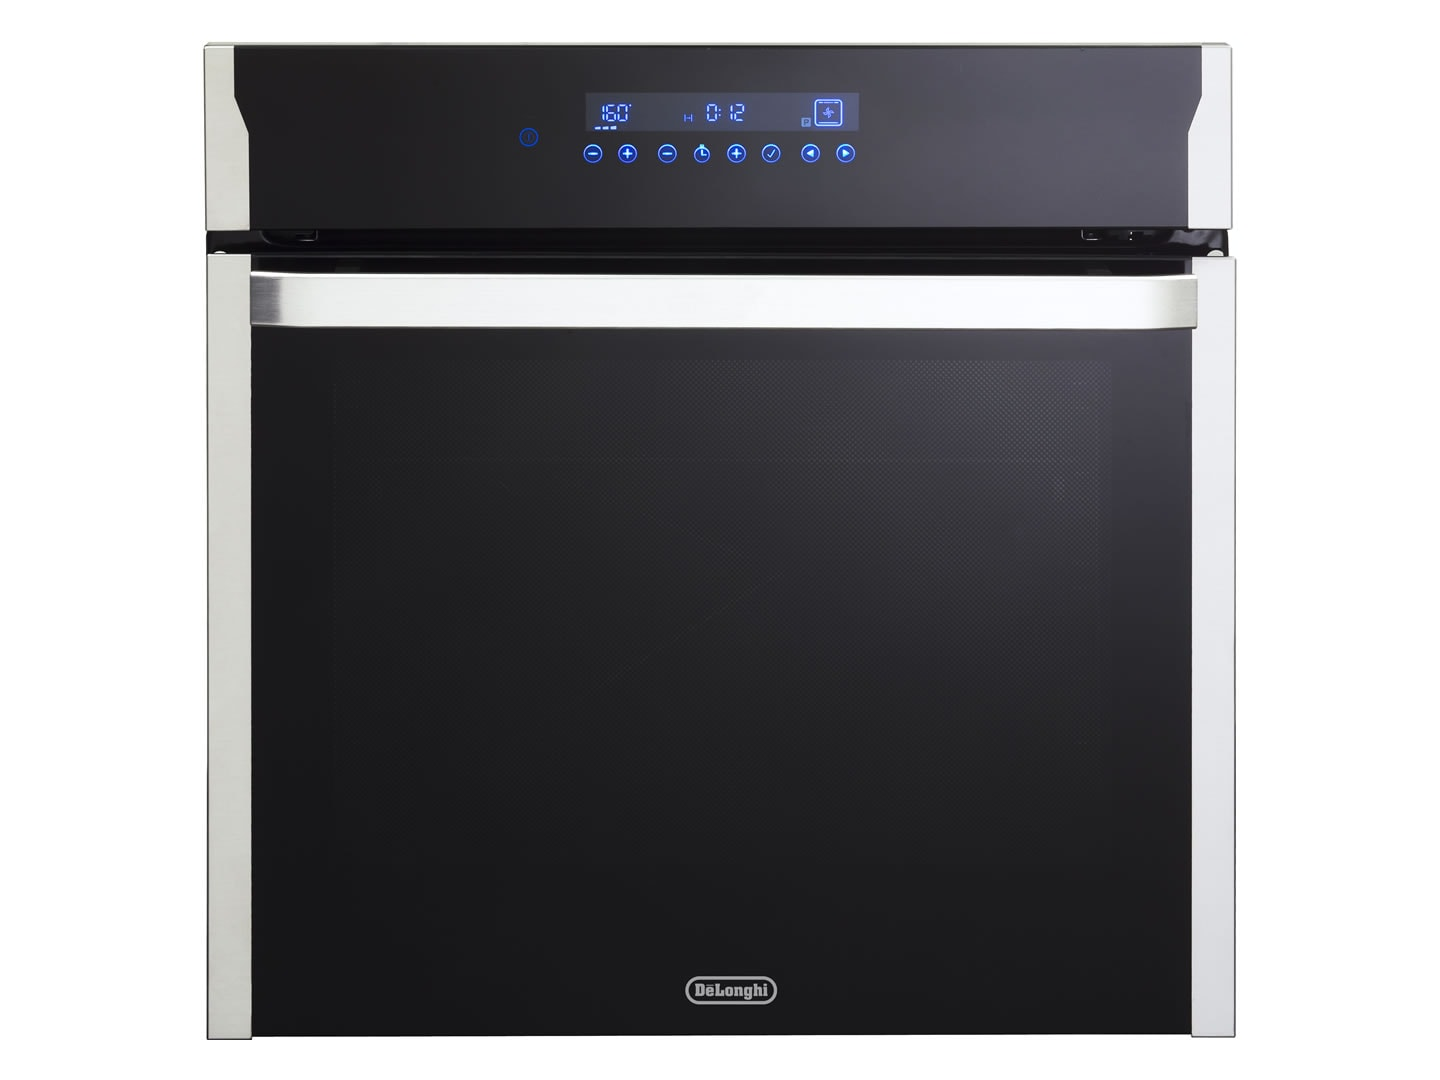 DeLonghi 60cm 85L Pyrolytic Built-in Oven DEP7410P